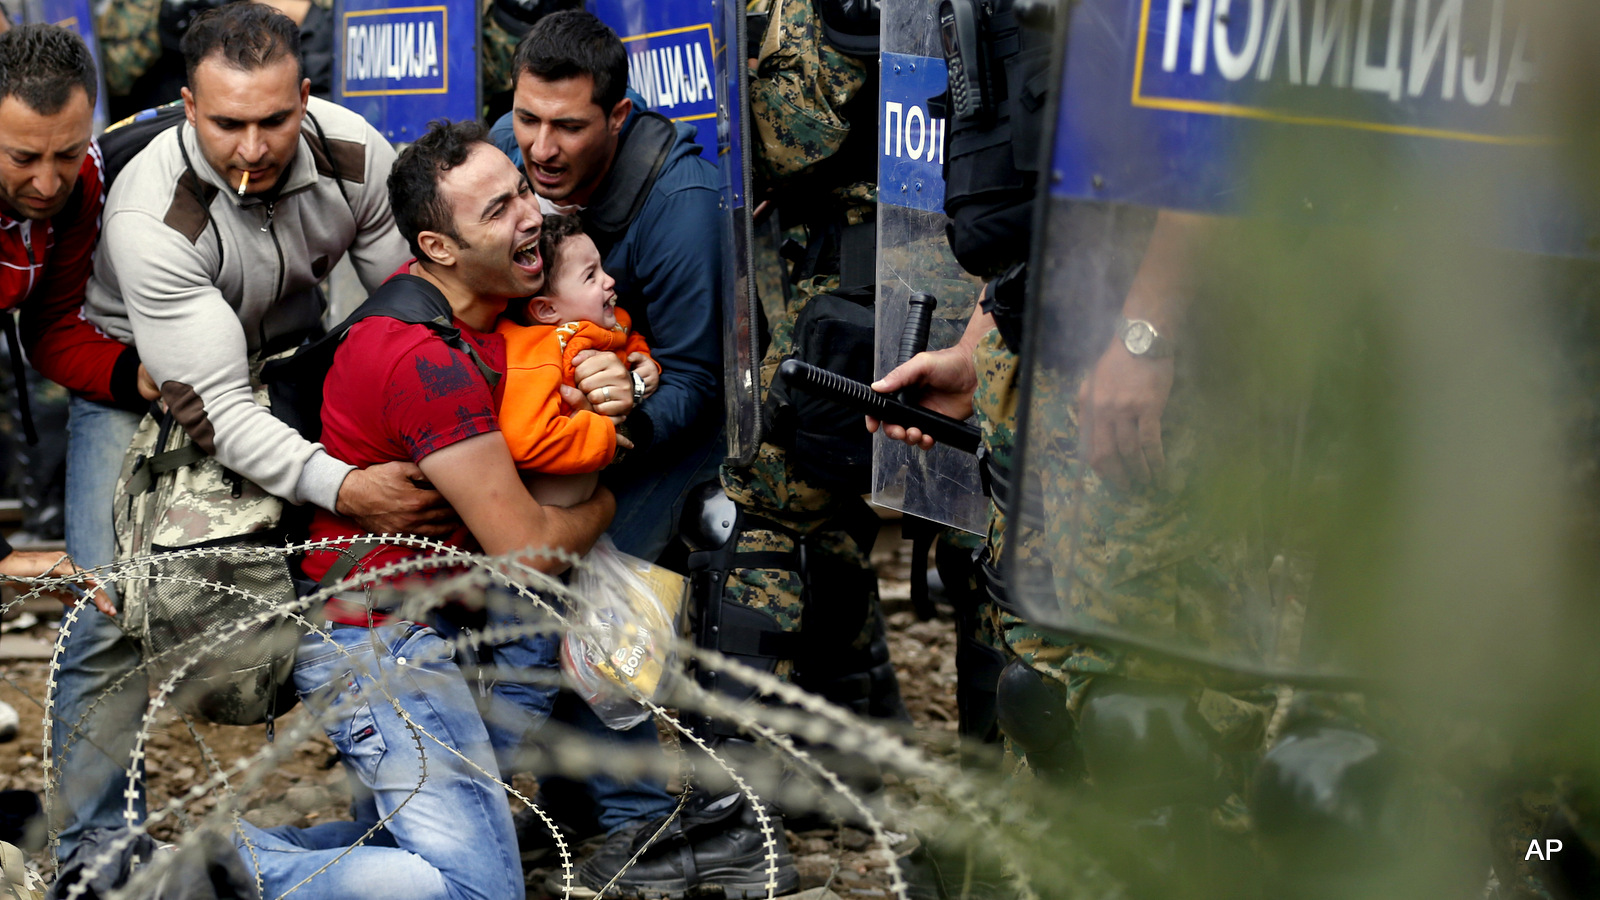 Migrant men help a fellow migrant man holding a boy as they are stuck between Macedonian riot police officers and migrants during a clash near the border train station of Idomeni, northern Greece, as they wait to be allowed by the Macedonian police to cross the border from Greece to Macedonia, Friday, Aug. 21, 2015. Macedonian special police forces have fired stun grenades to disperse thousands of migrants stuck on a no-man's land with Greece, a day after Macedonia declared a state of emergency on its borders to deal with a massive influx of migrants heading north to Europe. (AP Photo/Darko Vojinovic)